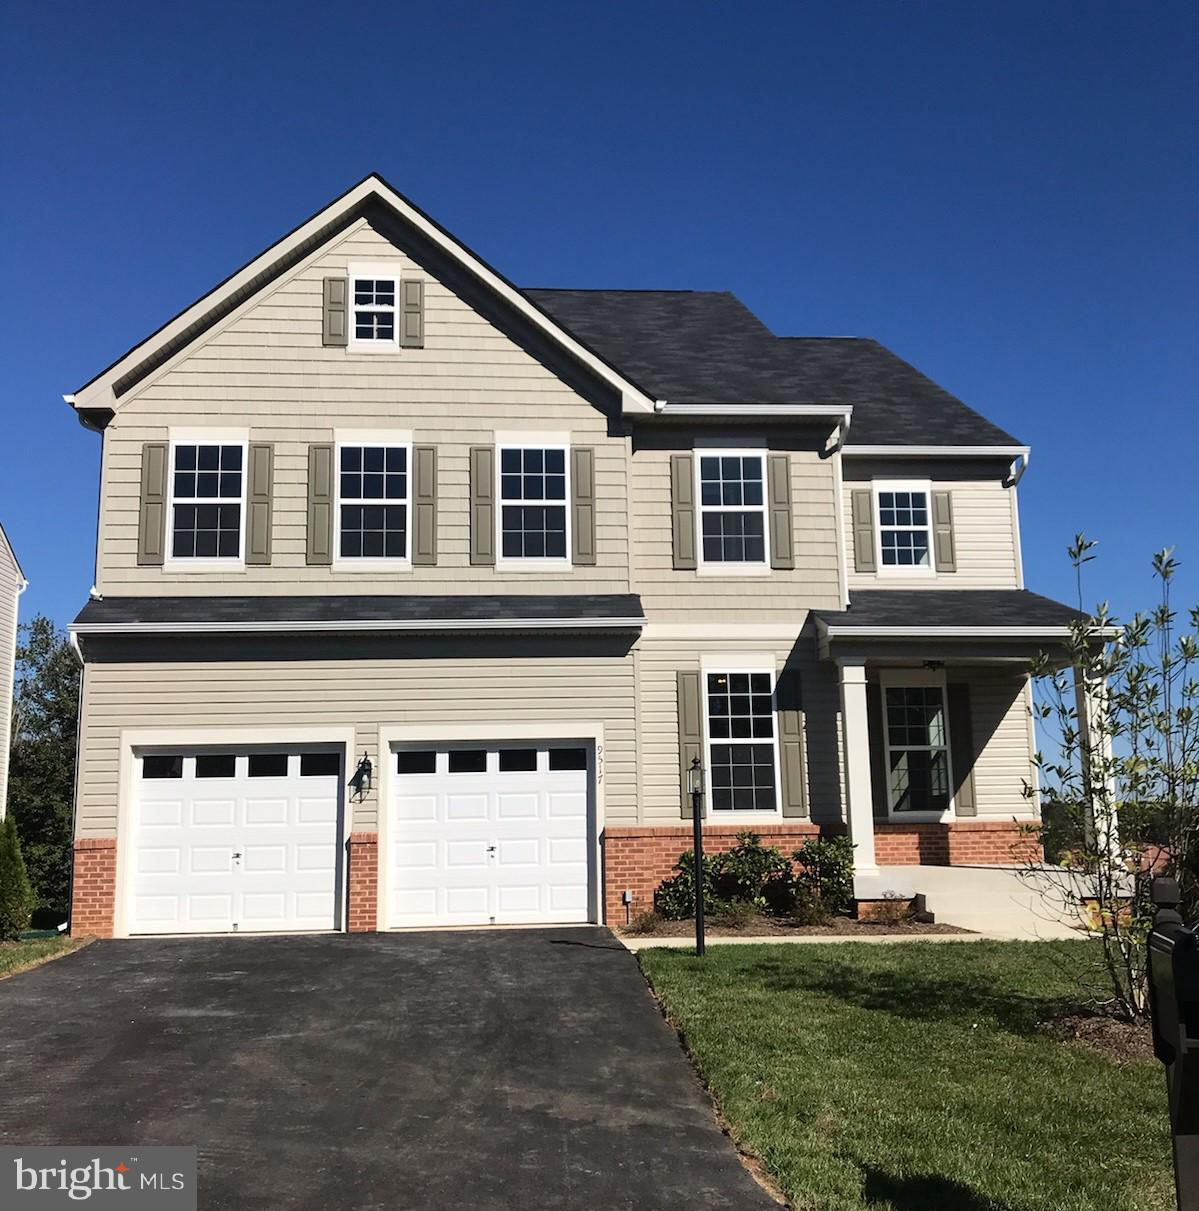 9517 SPRING HILL FARM WAY, MANASSAS, VA 20111